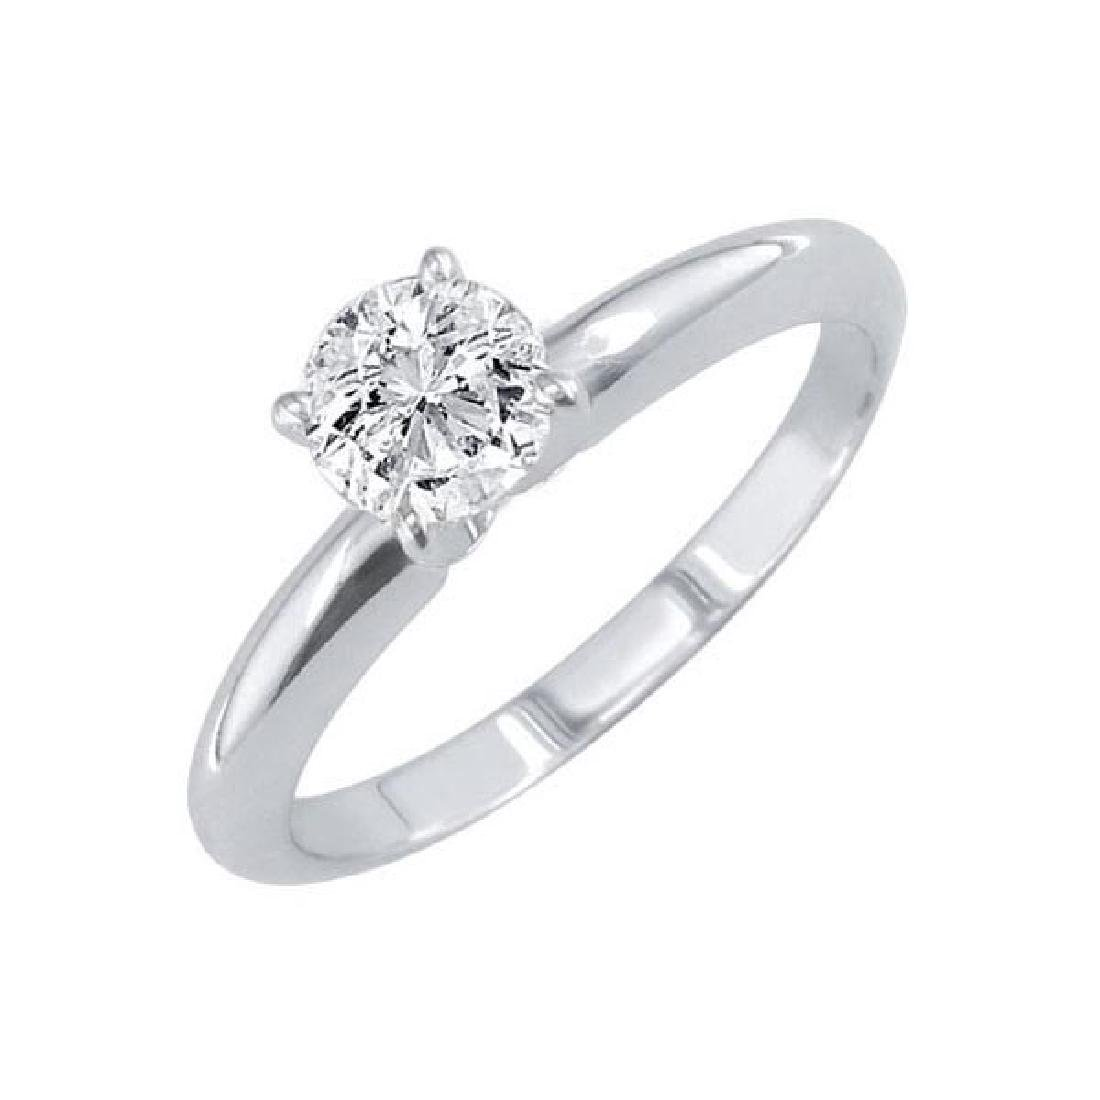 Certified 0.58 CTW Round Diamond Solitaire 14k Ring D/S